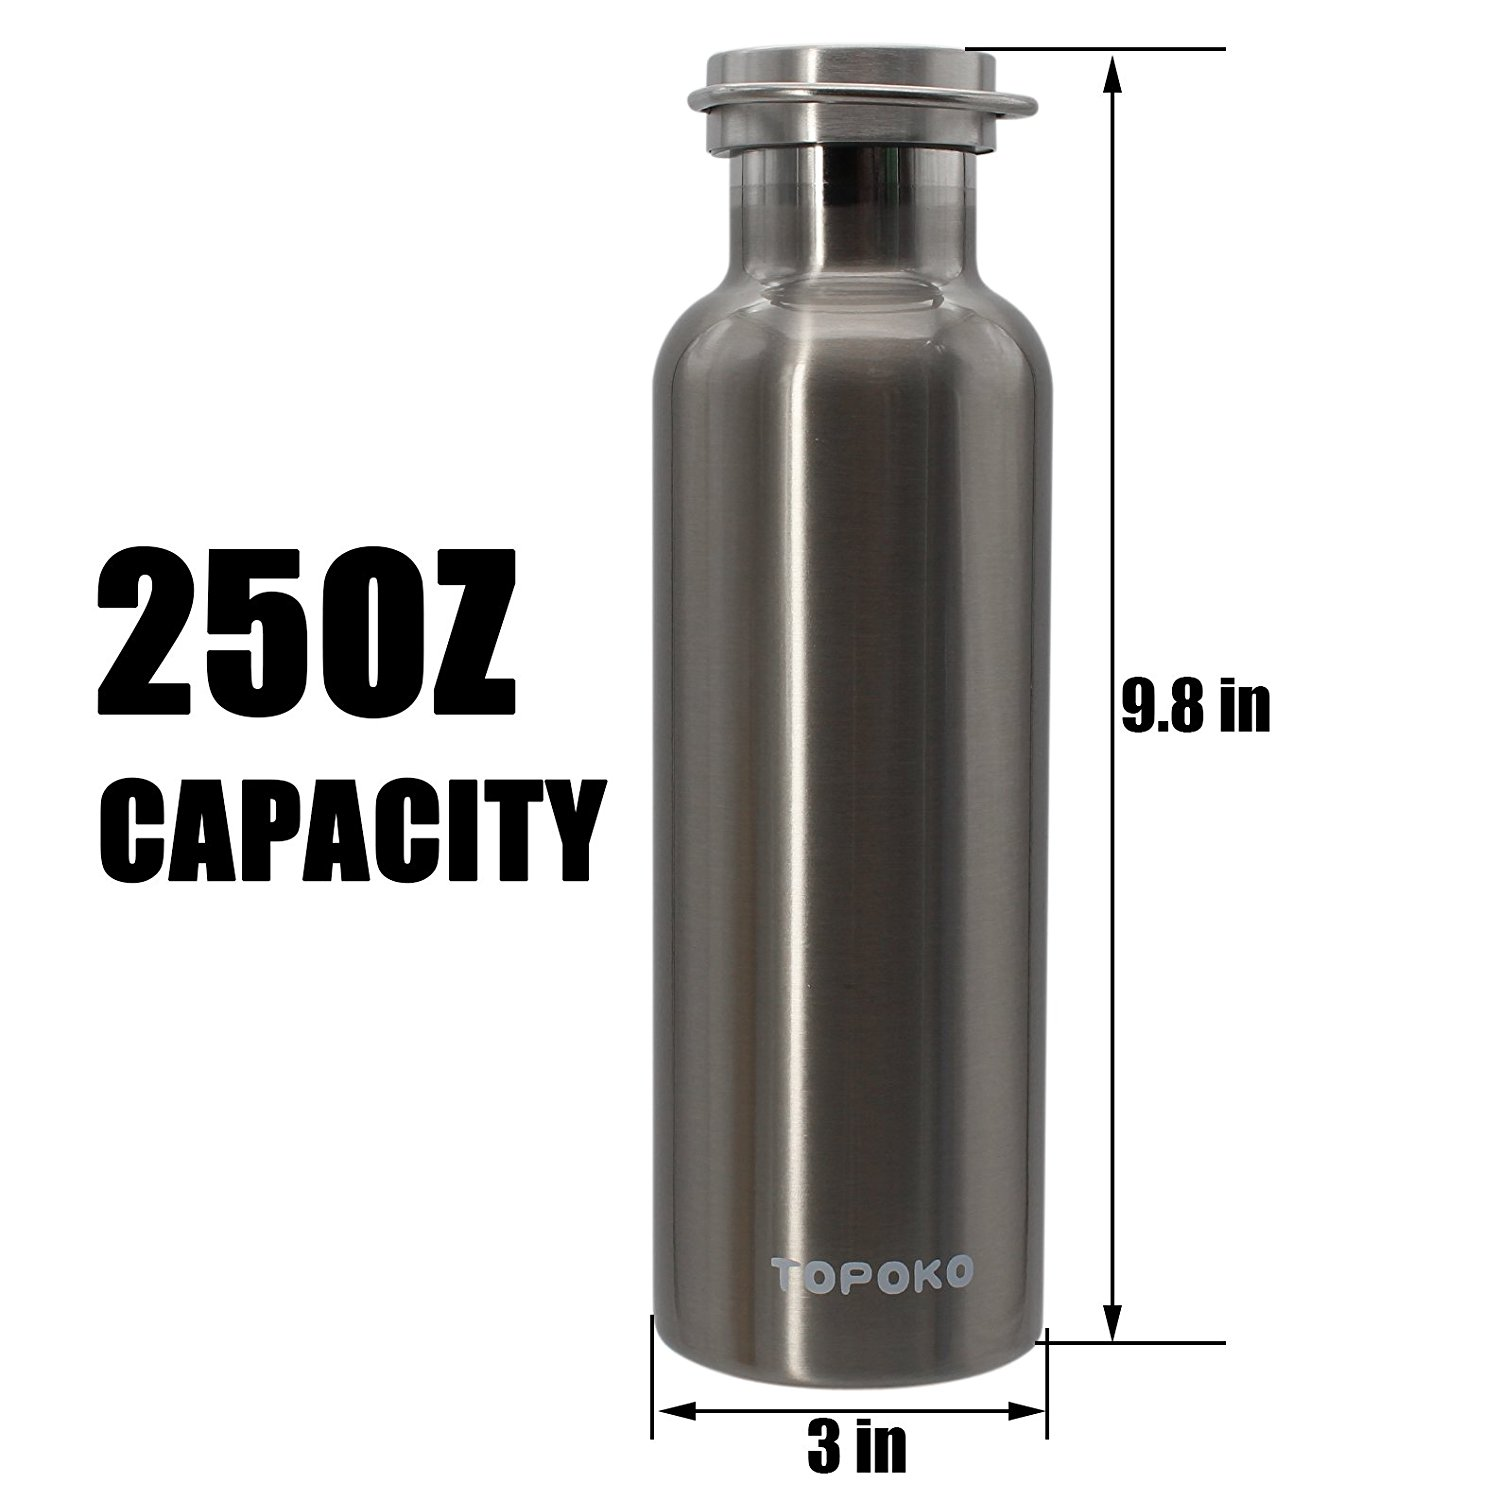 Silver TOPOKO 25 OZ Cola Style Double Wall Stainless Steel Water Bottle Vacuum Insulated Bottle Leak Proof Bottle,BPA Free with Handle